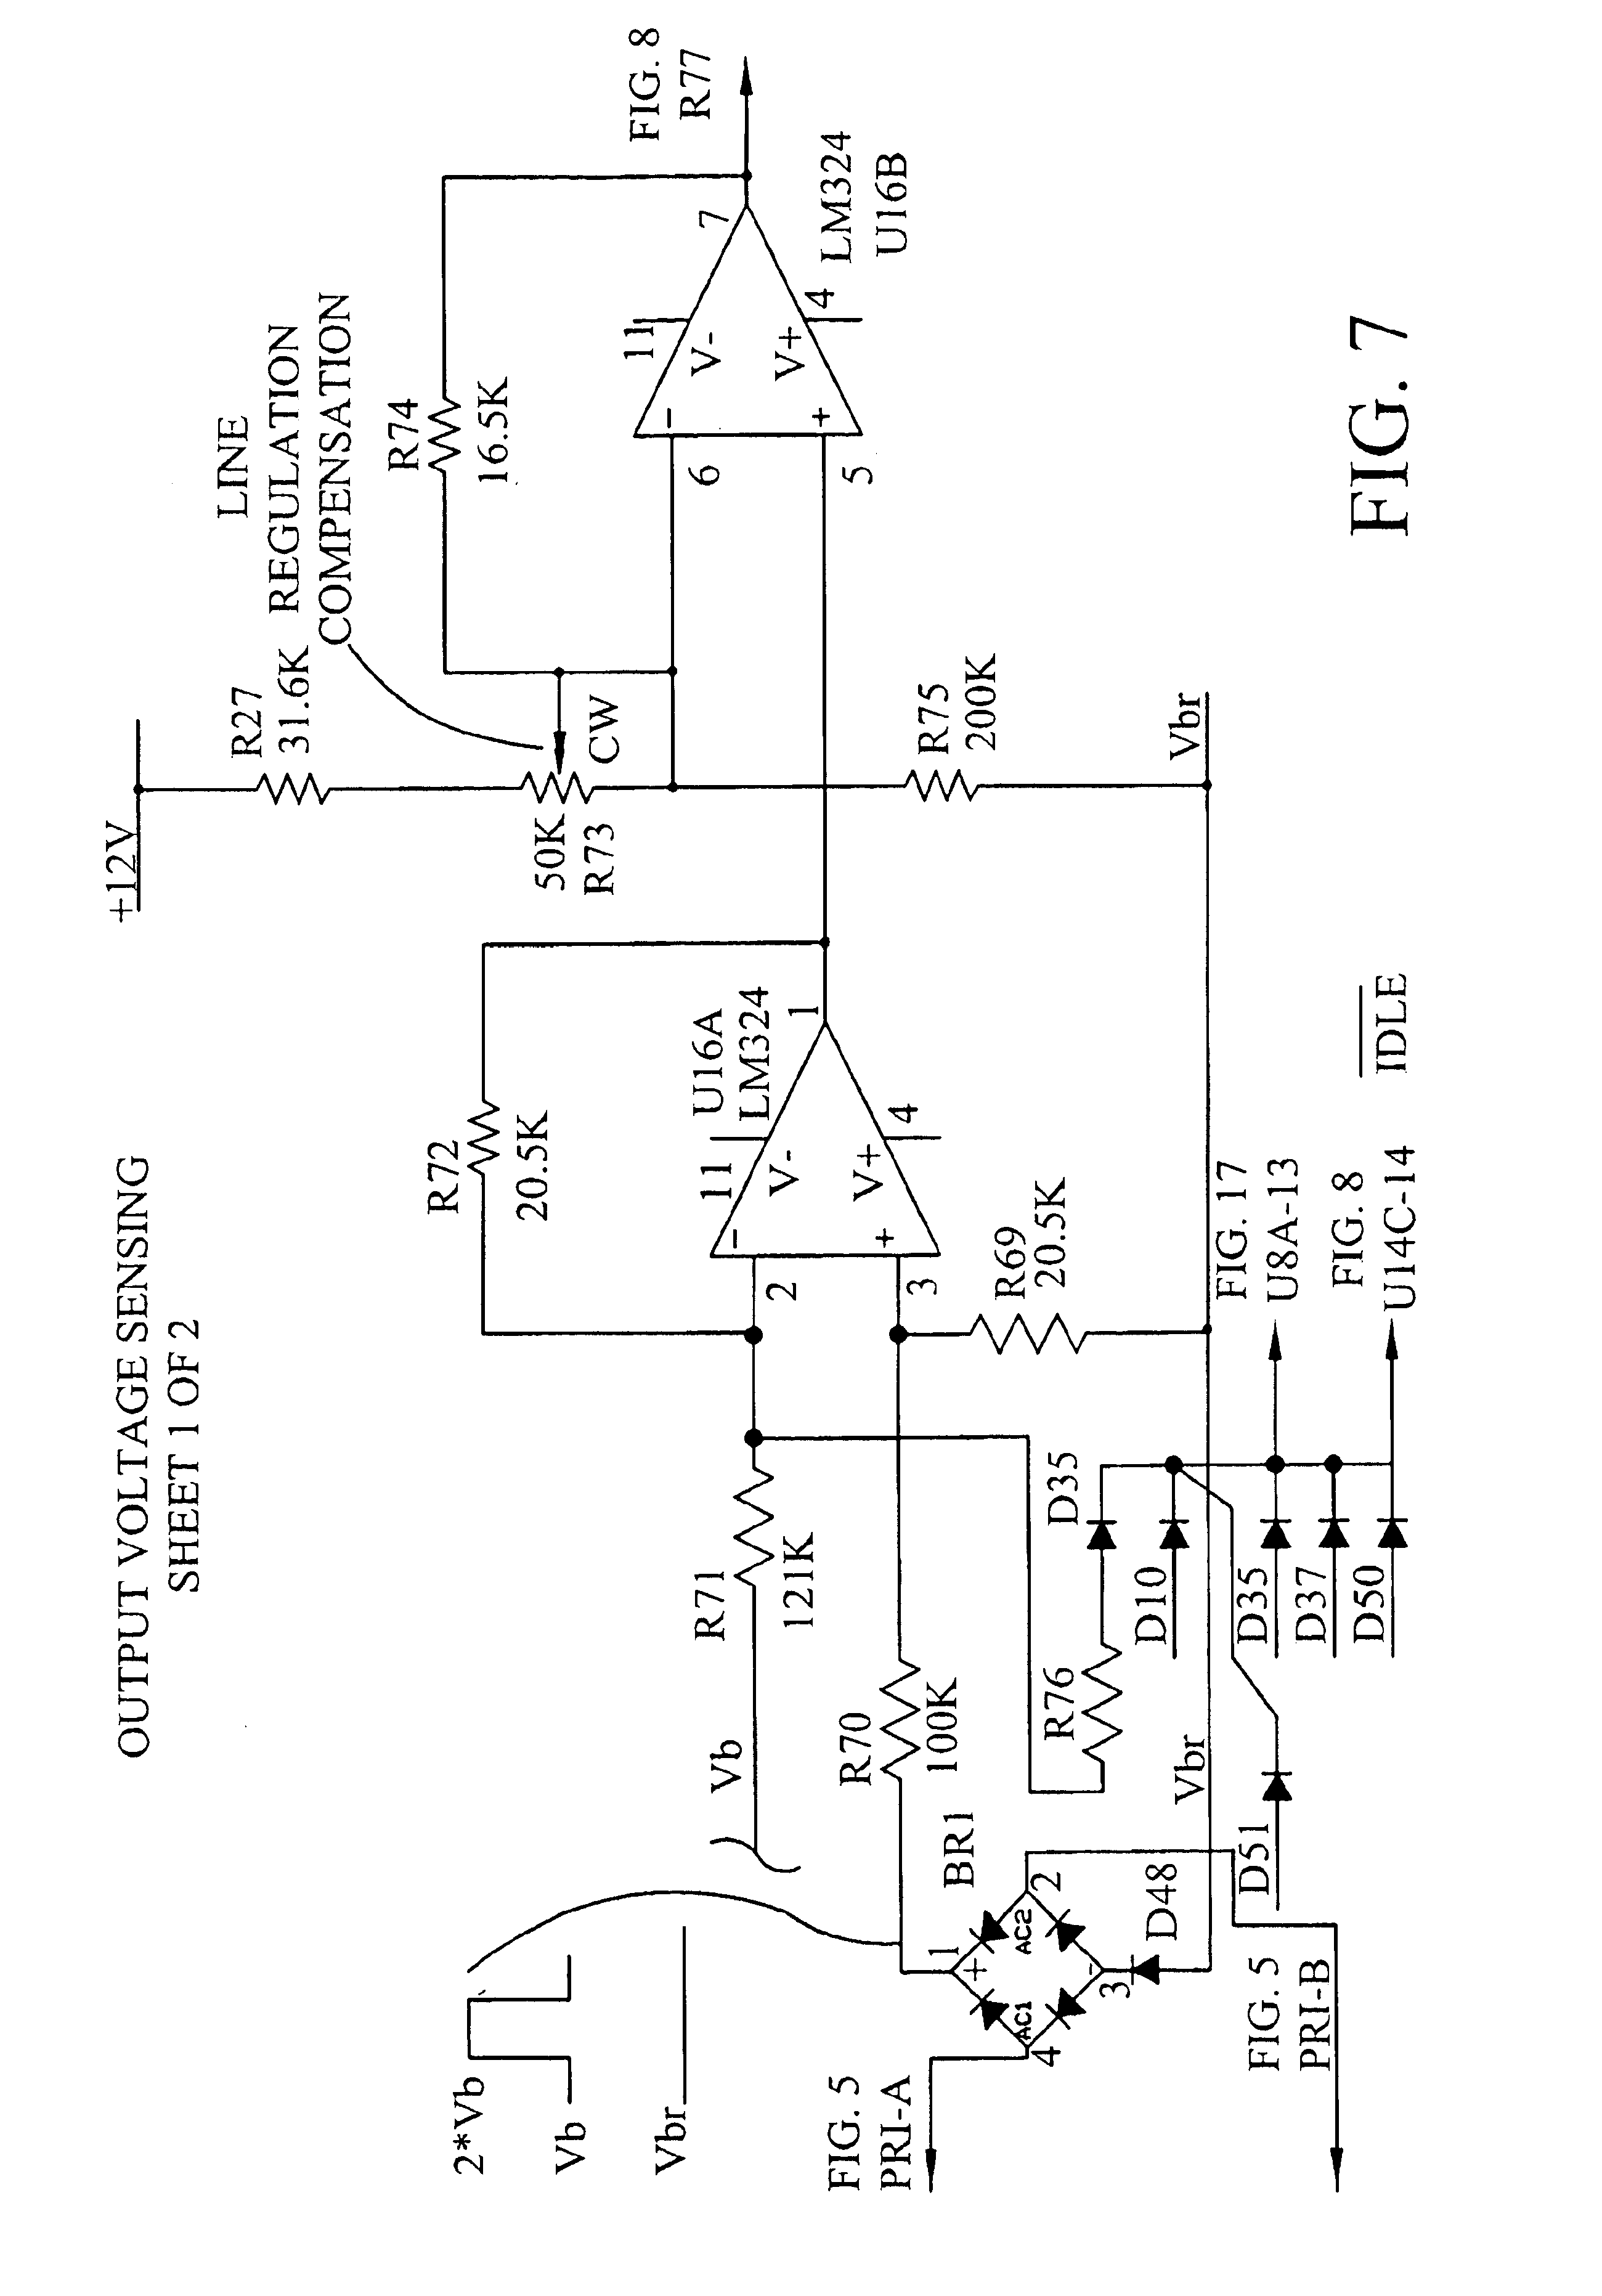 Patent Us6958922 High Output Power Quasi Square Wave Inverter Modifying Inverters To Sine Equivalents Drawing